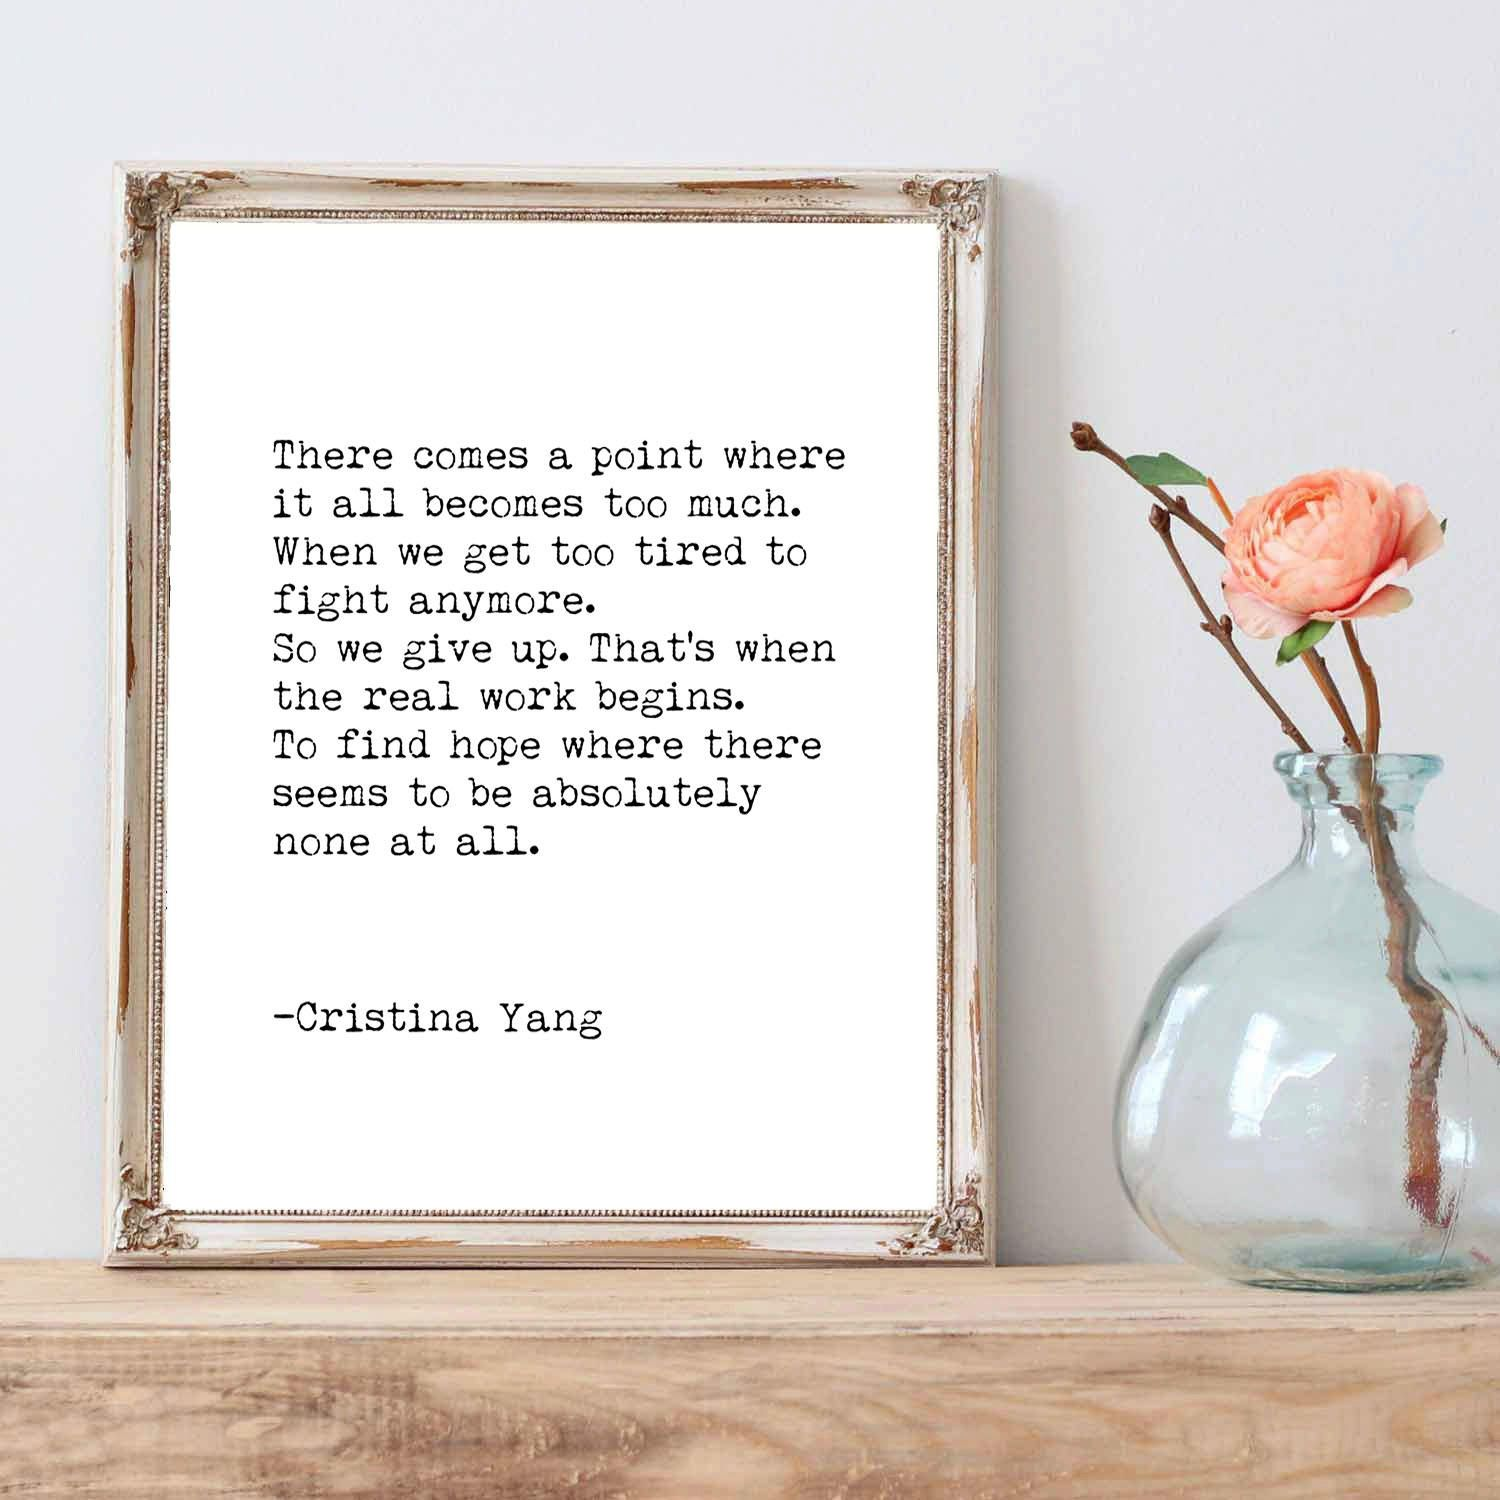 Cristina Yang quote / to find hope / when it all seems to hard ...